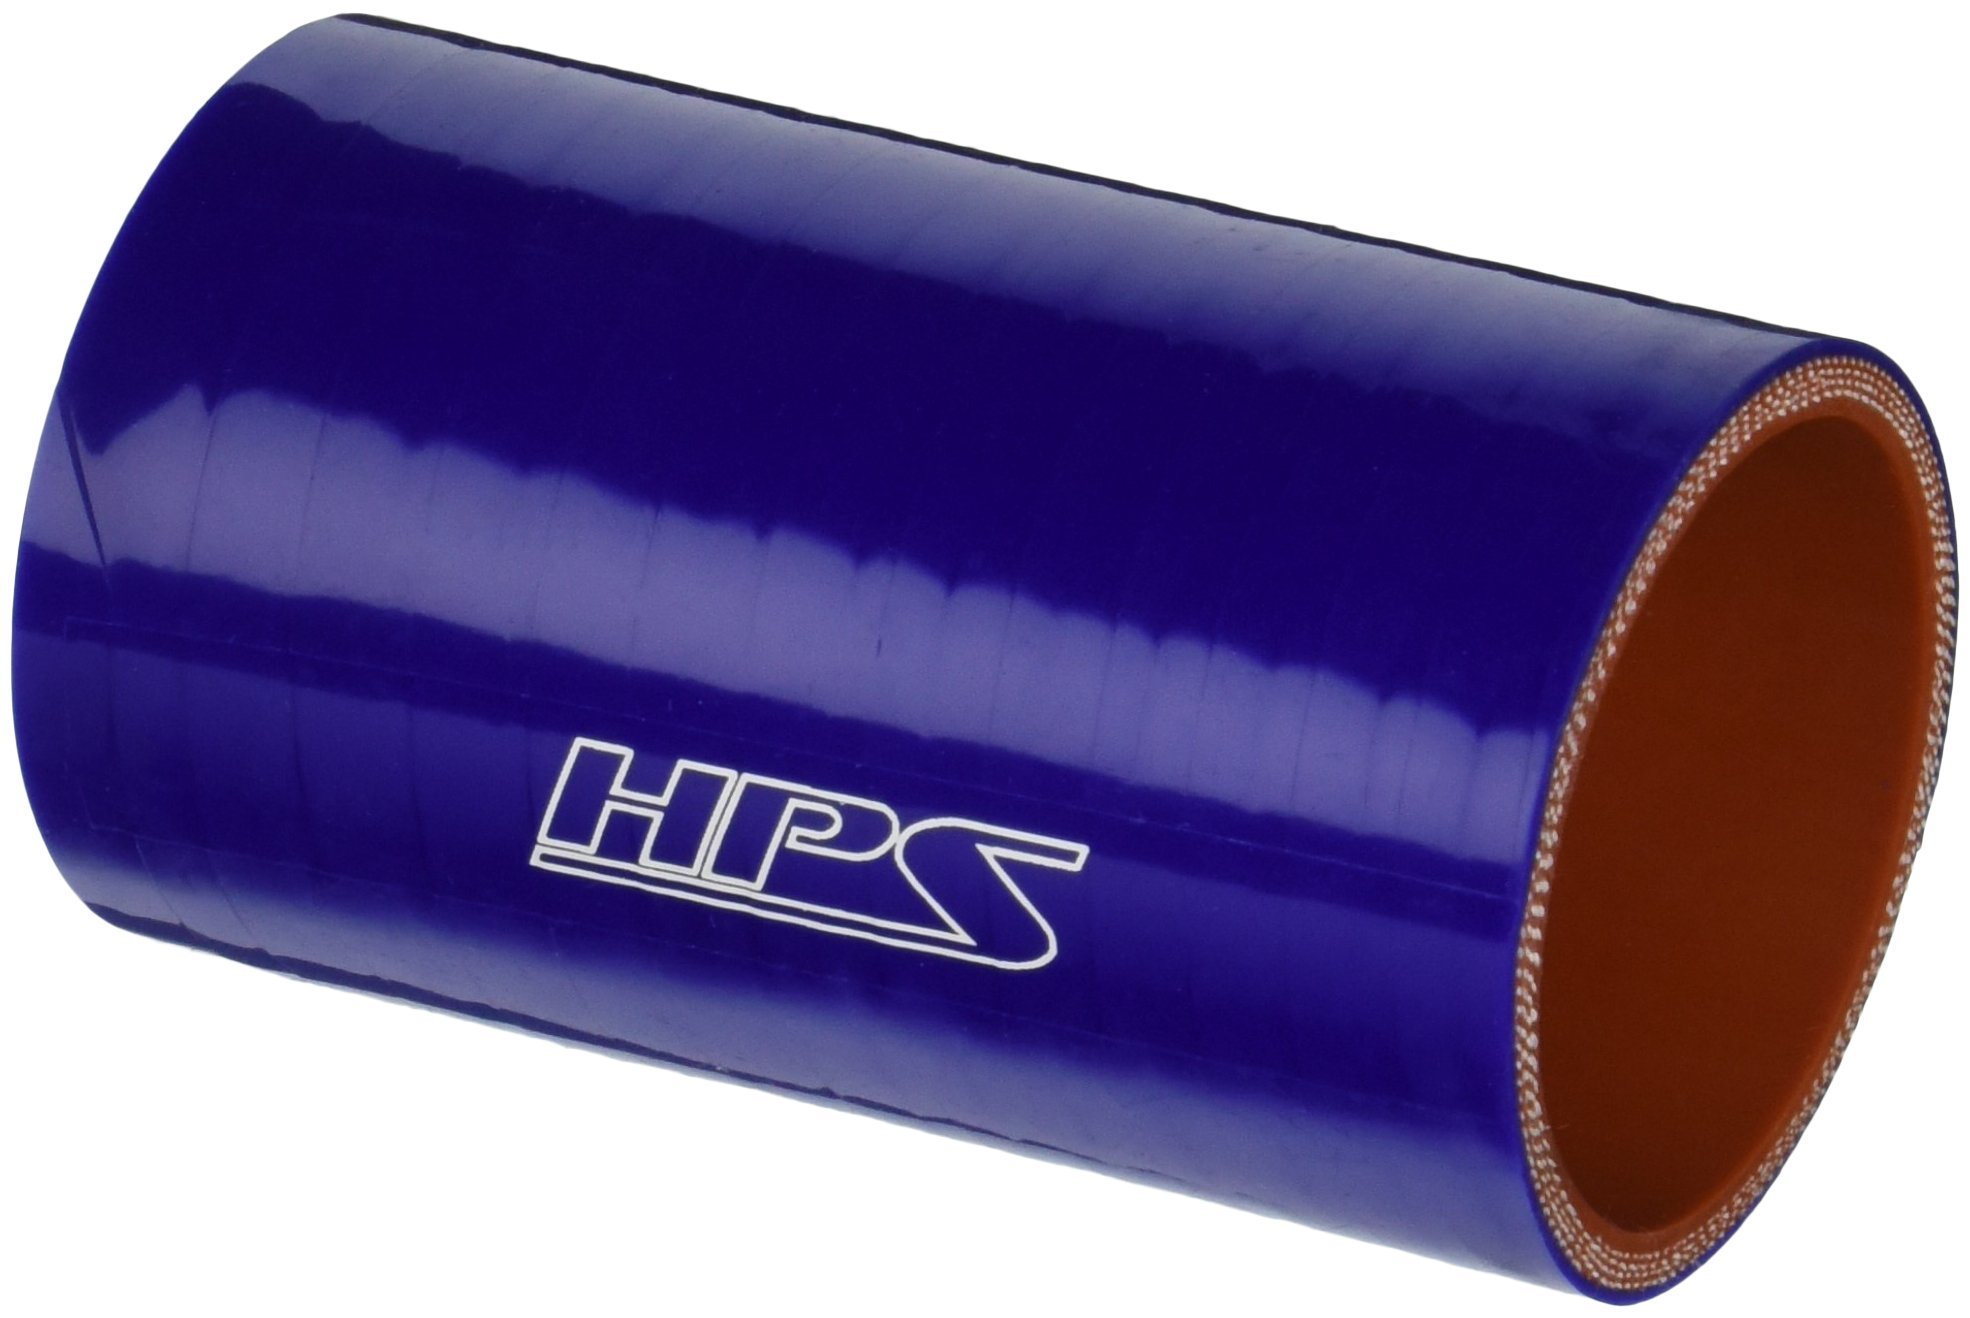 HPS HTSC-200-L4-BLUE Silicone High Temperature 4-ply Reinforced Straight Coupler Hose, 85 PSI Maximum Pressure, 4'' Length, 2'' ID, Blue